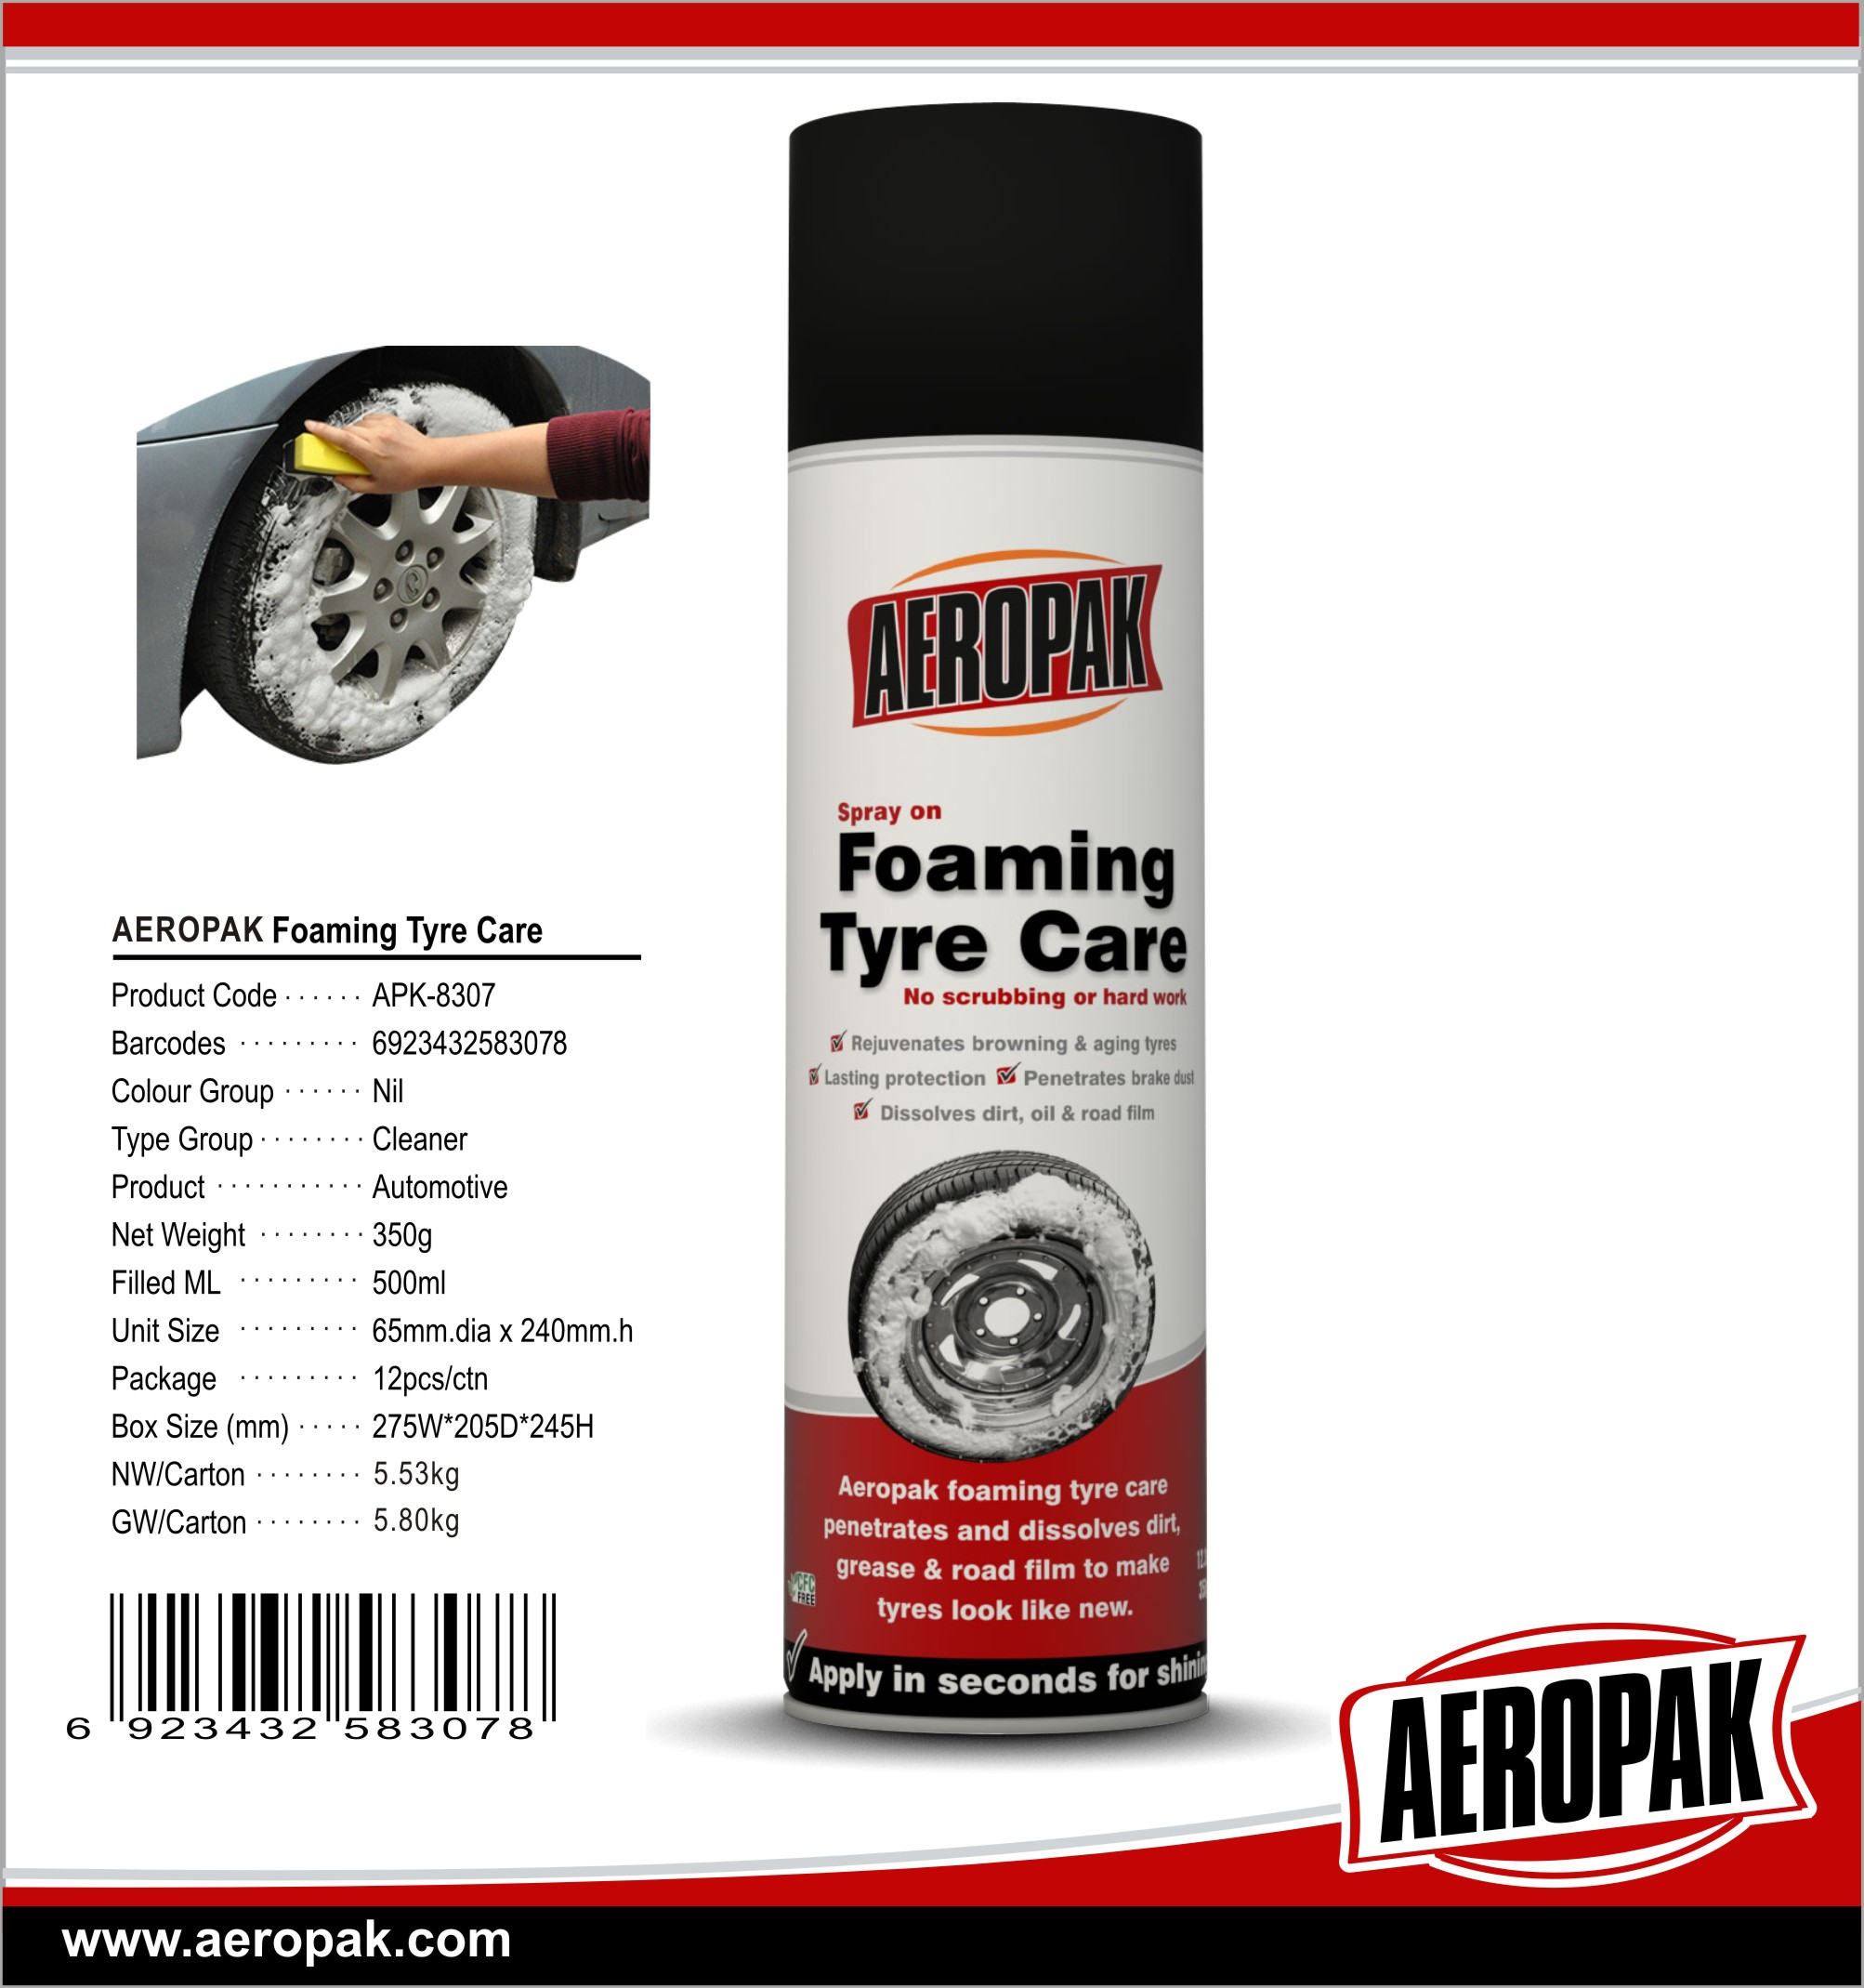 Aeropak Tyre equipment Radial tyre foaming care